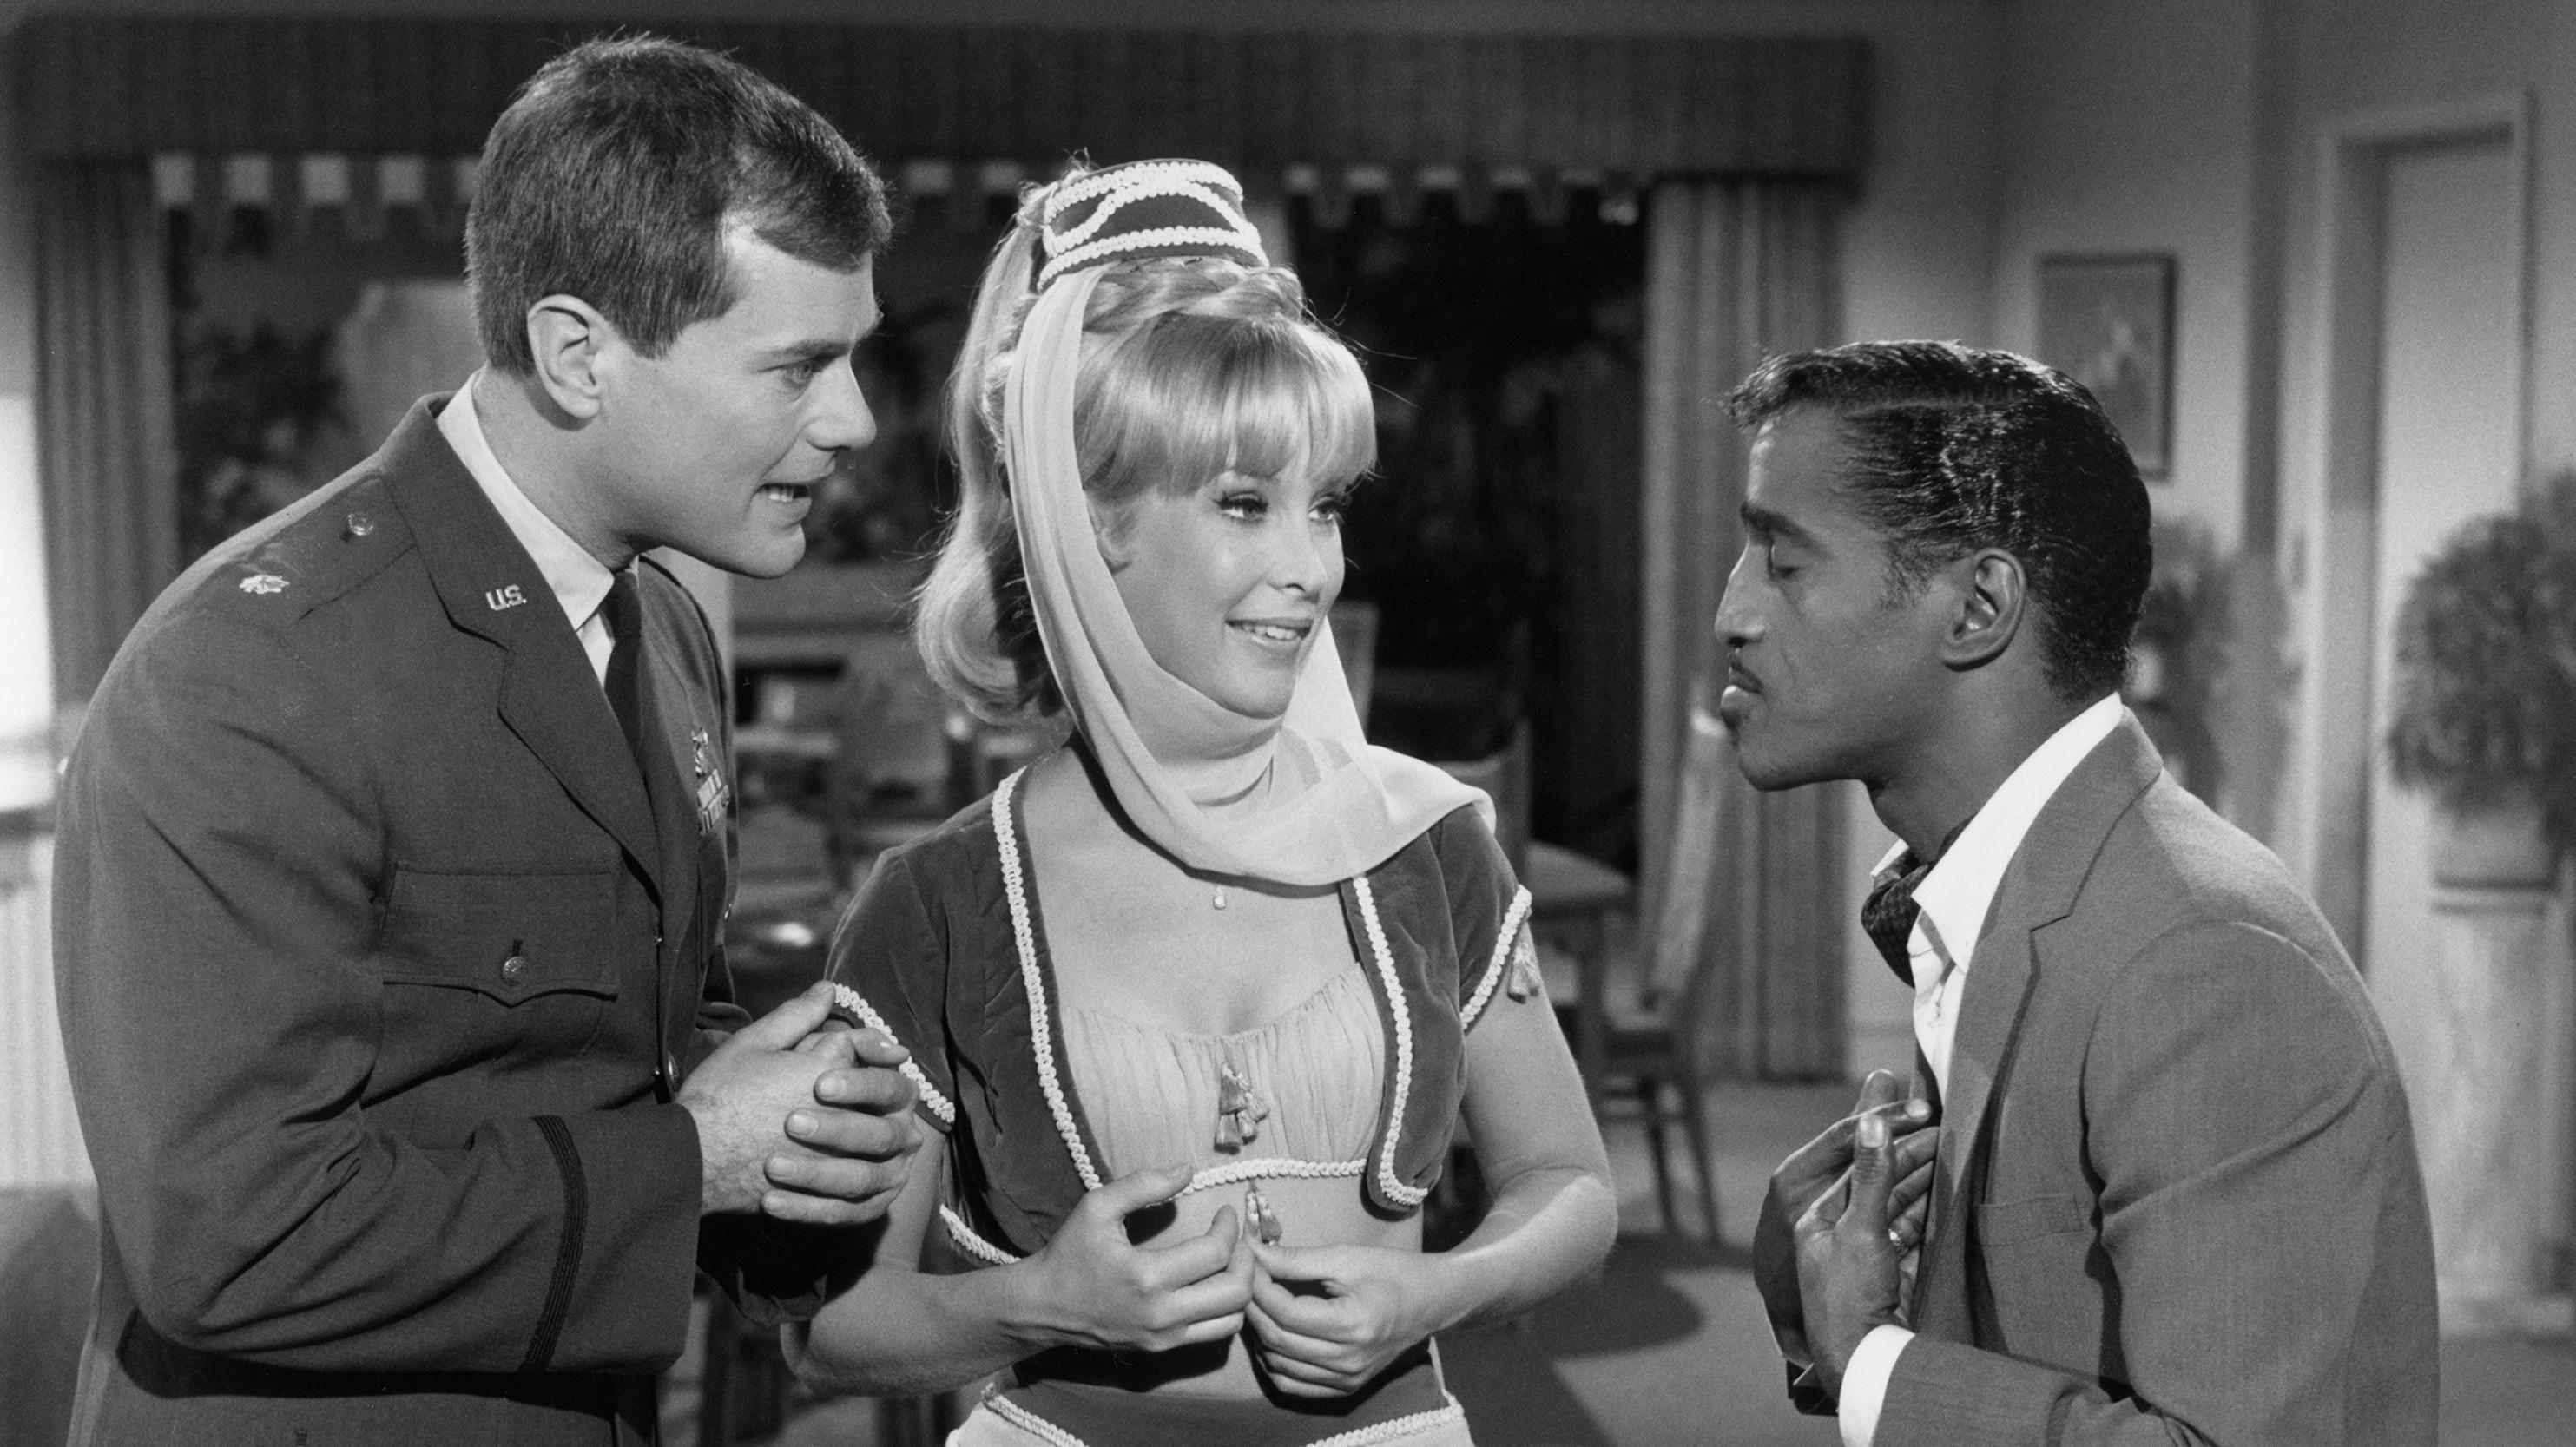 I Dream of Jeannie: The Greatest Entertainer in the World